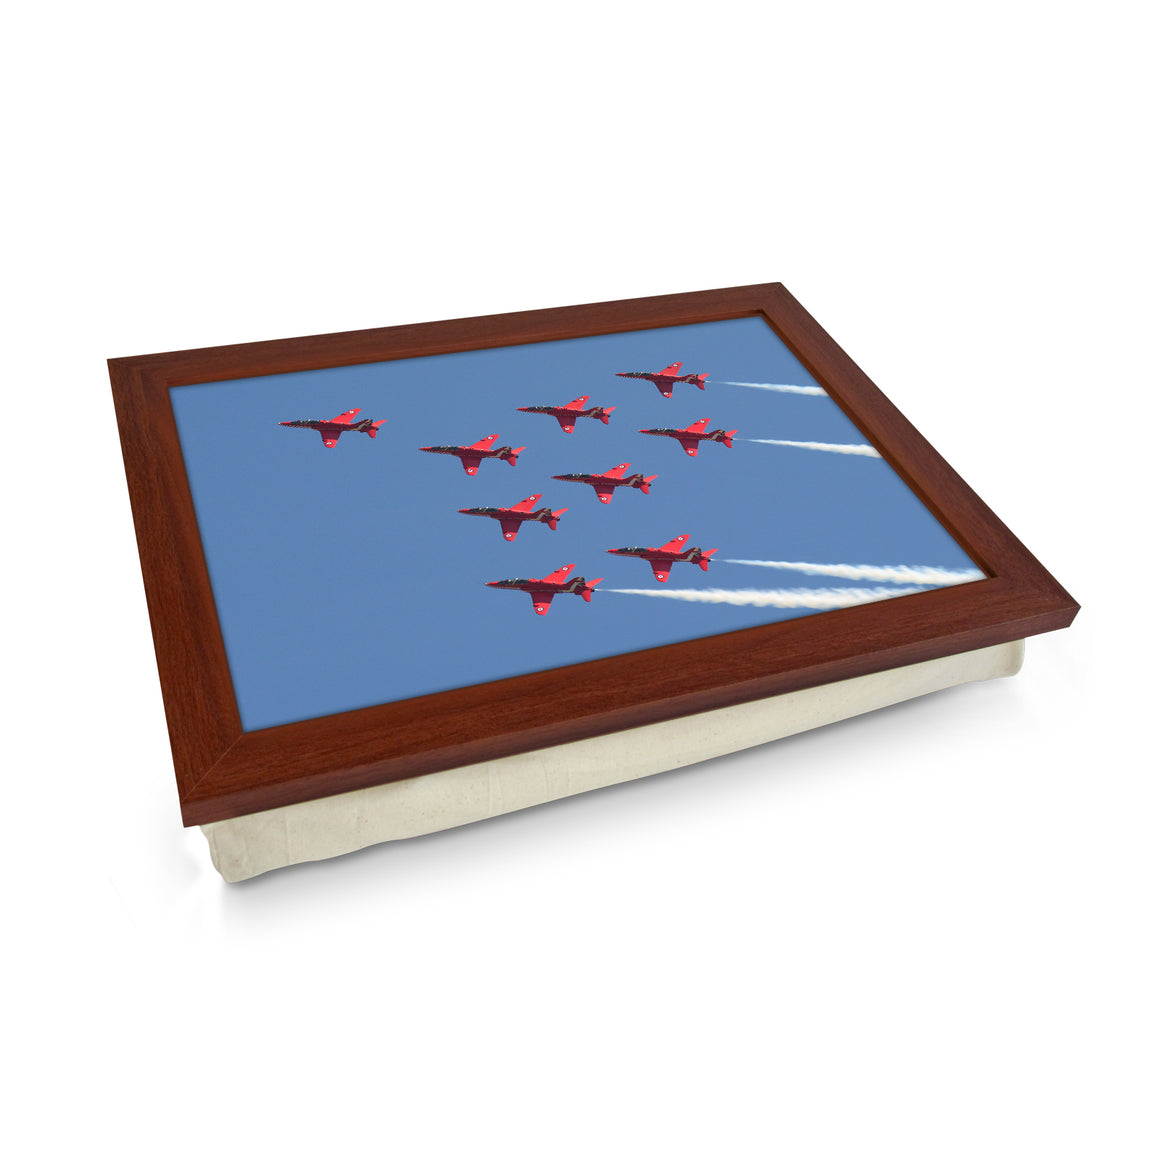 Red Arrows Plane Lap Tray - AD17894